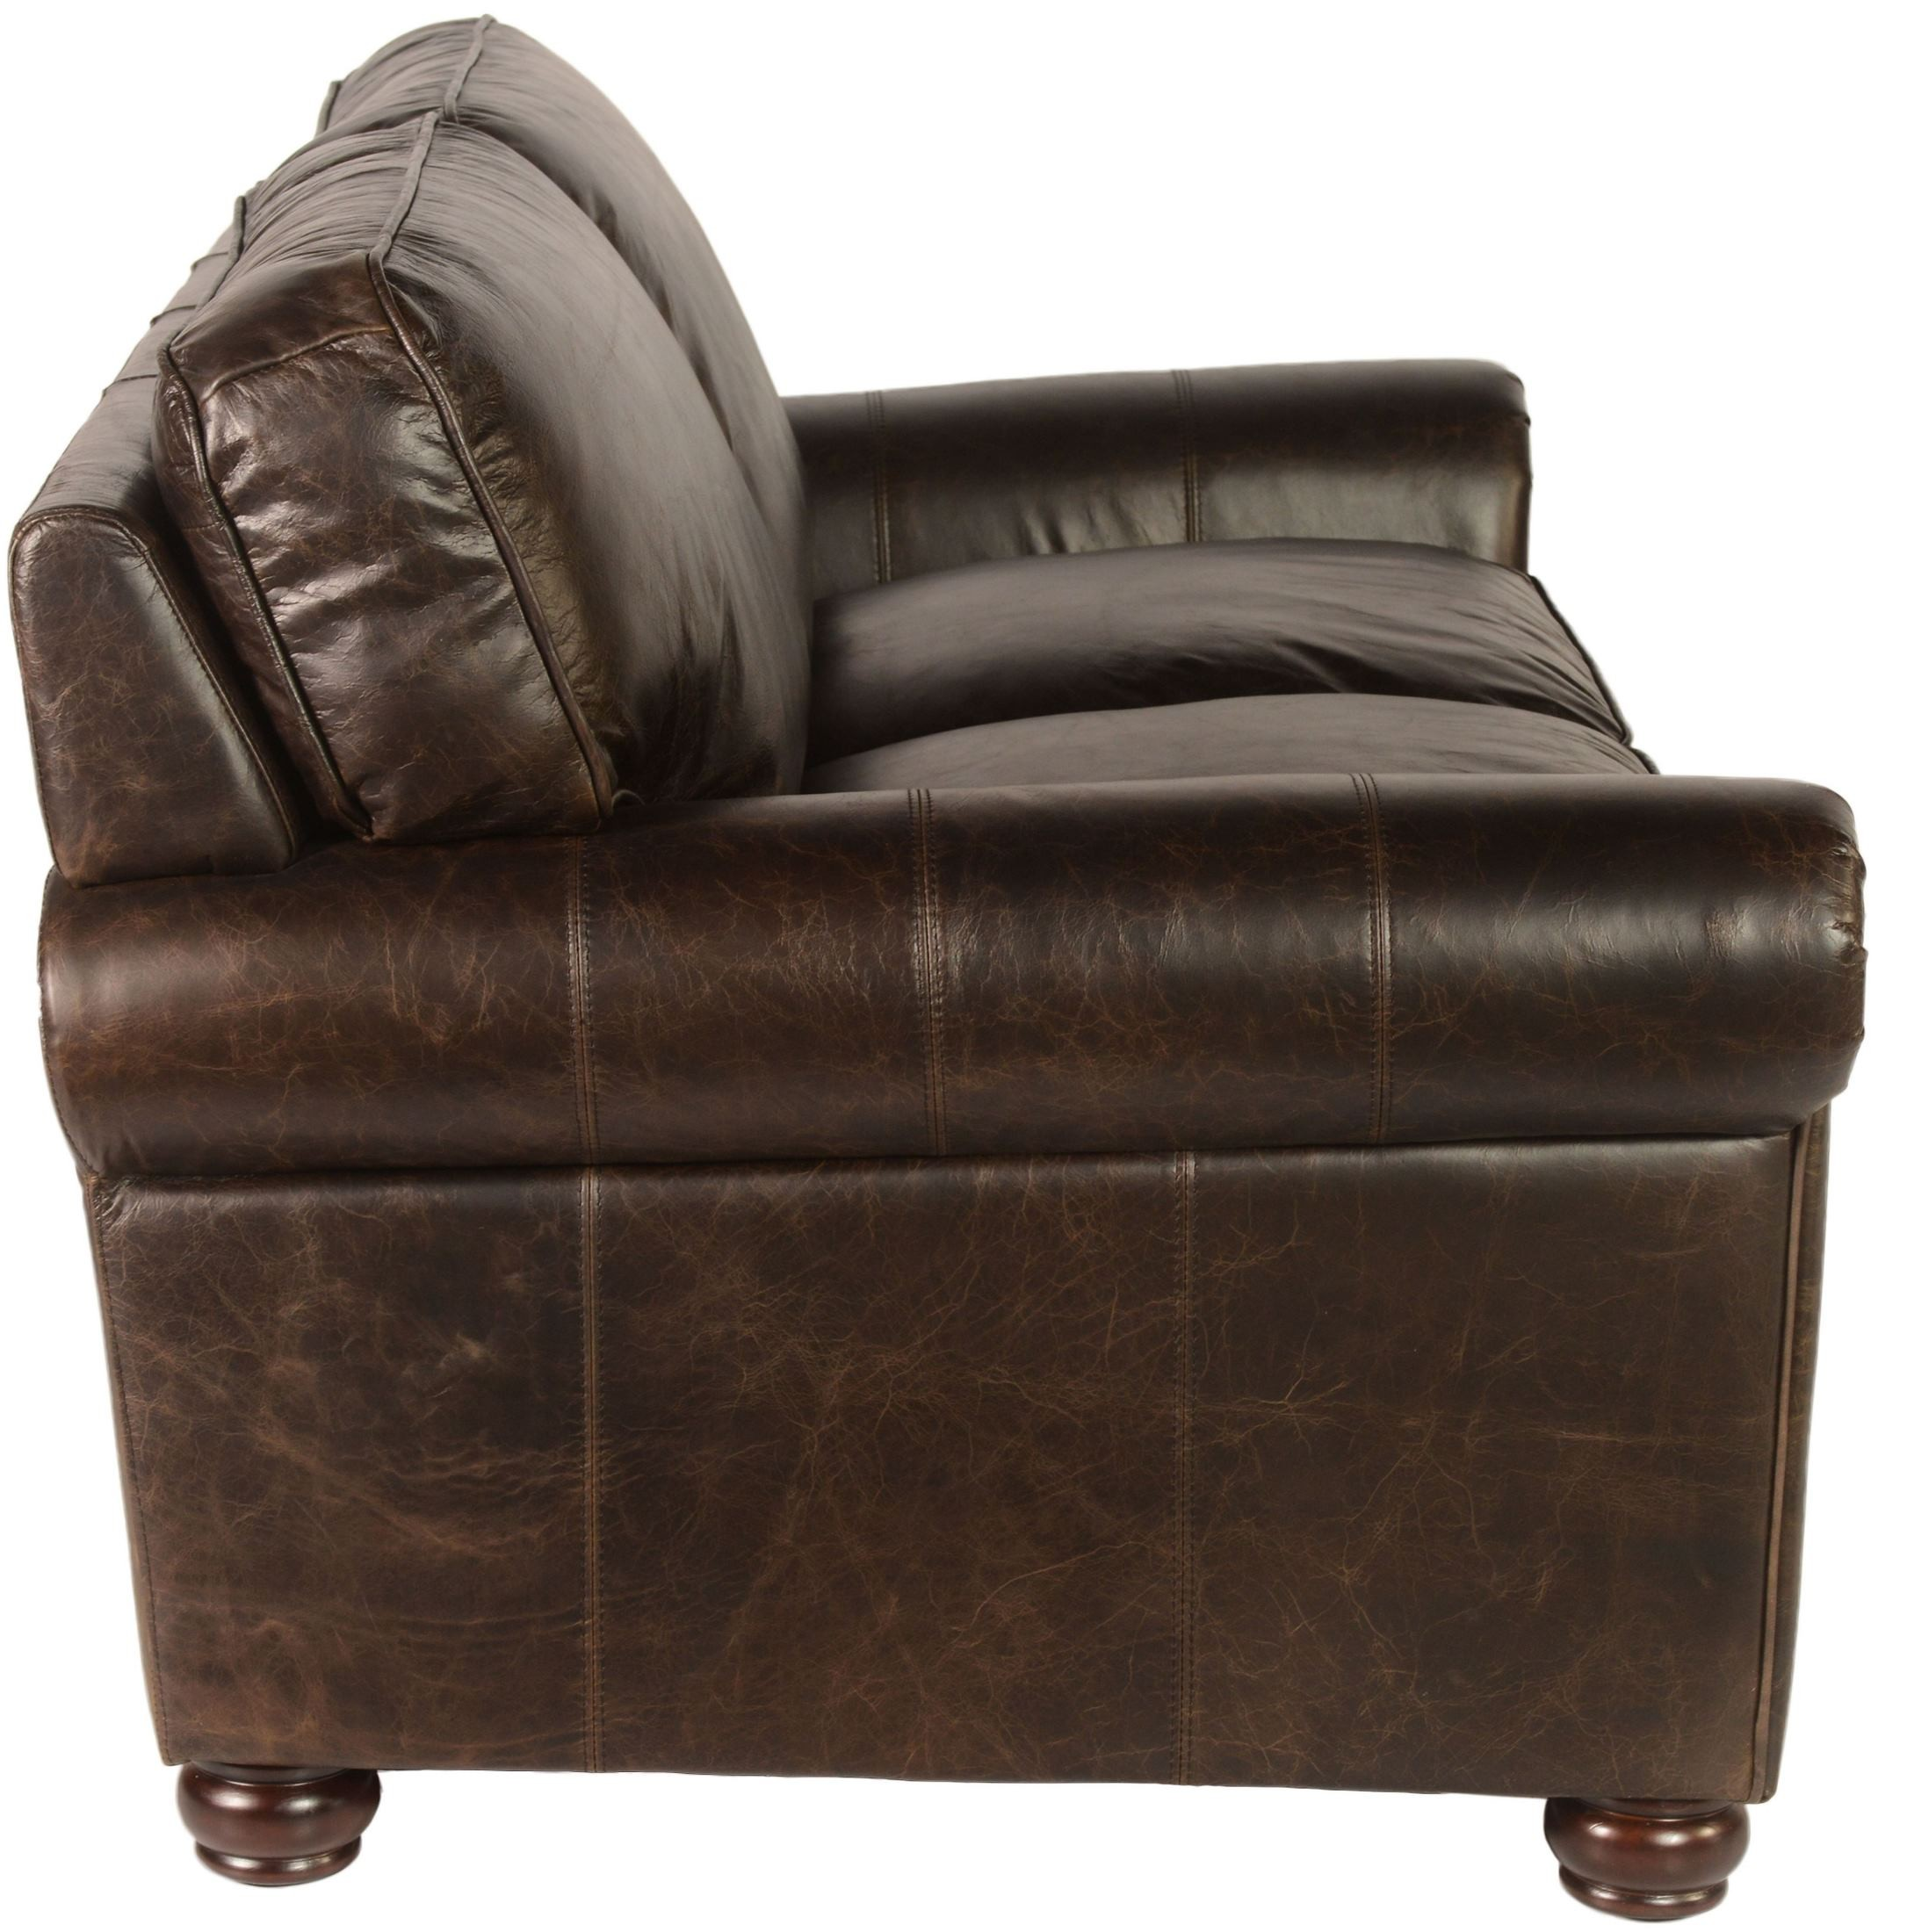 next brompton leather sofa wooden models in india genesis chocolate from lazzaro wh